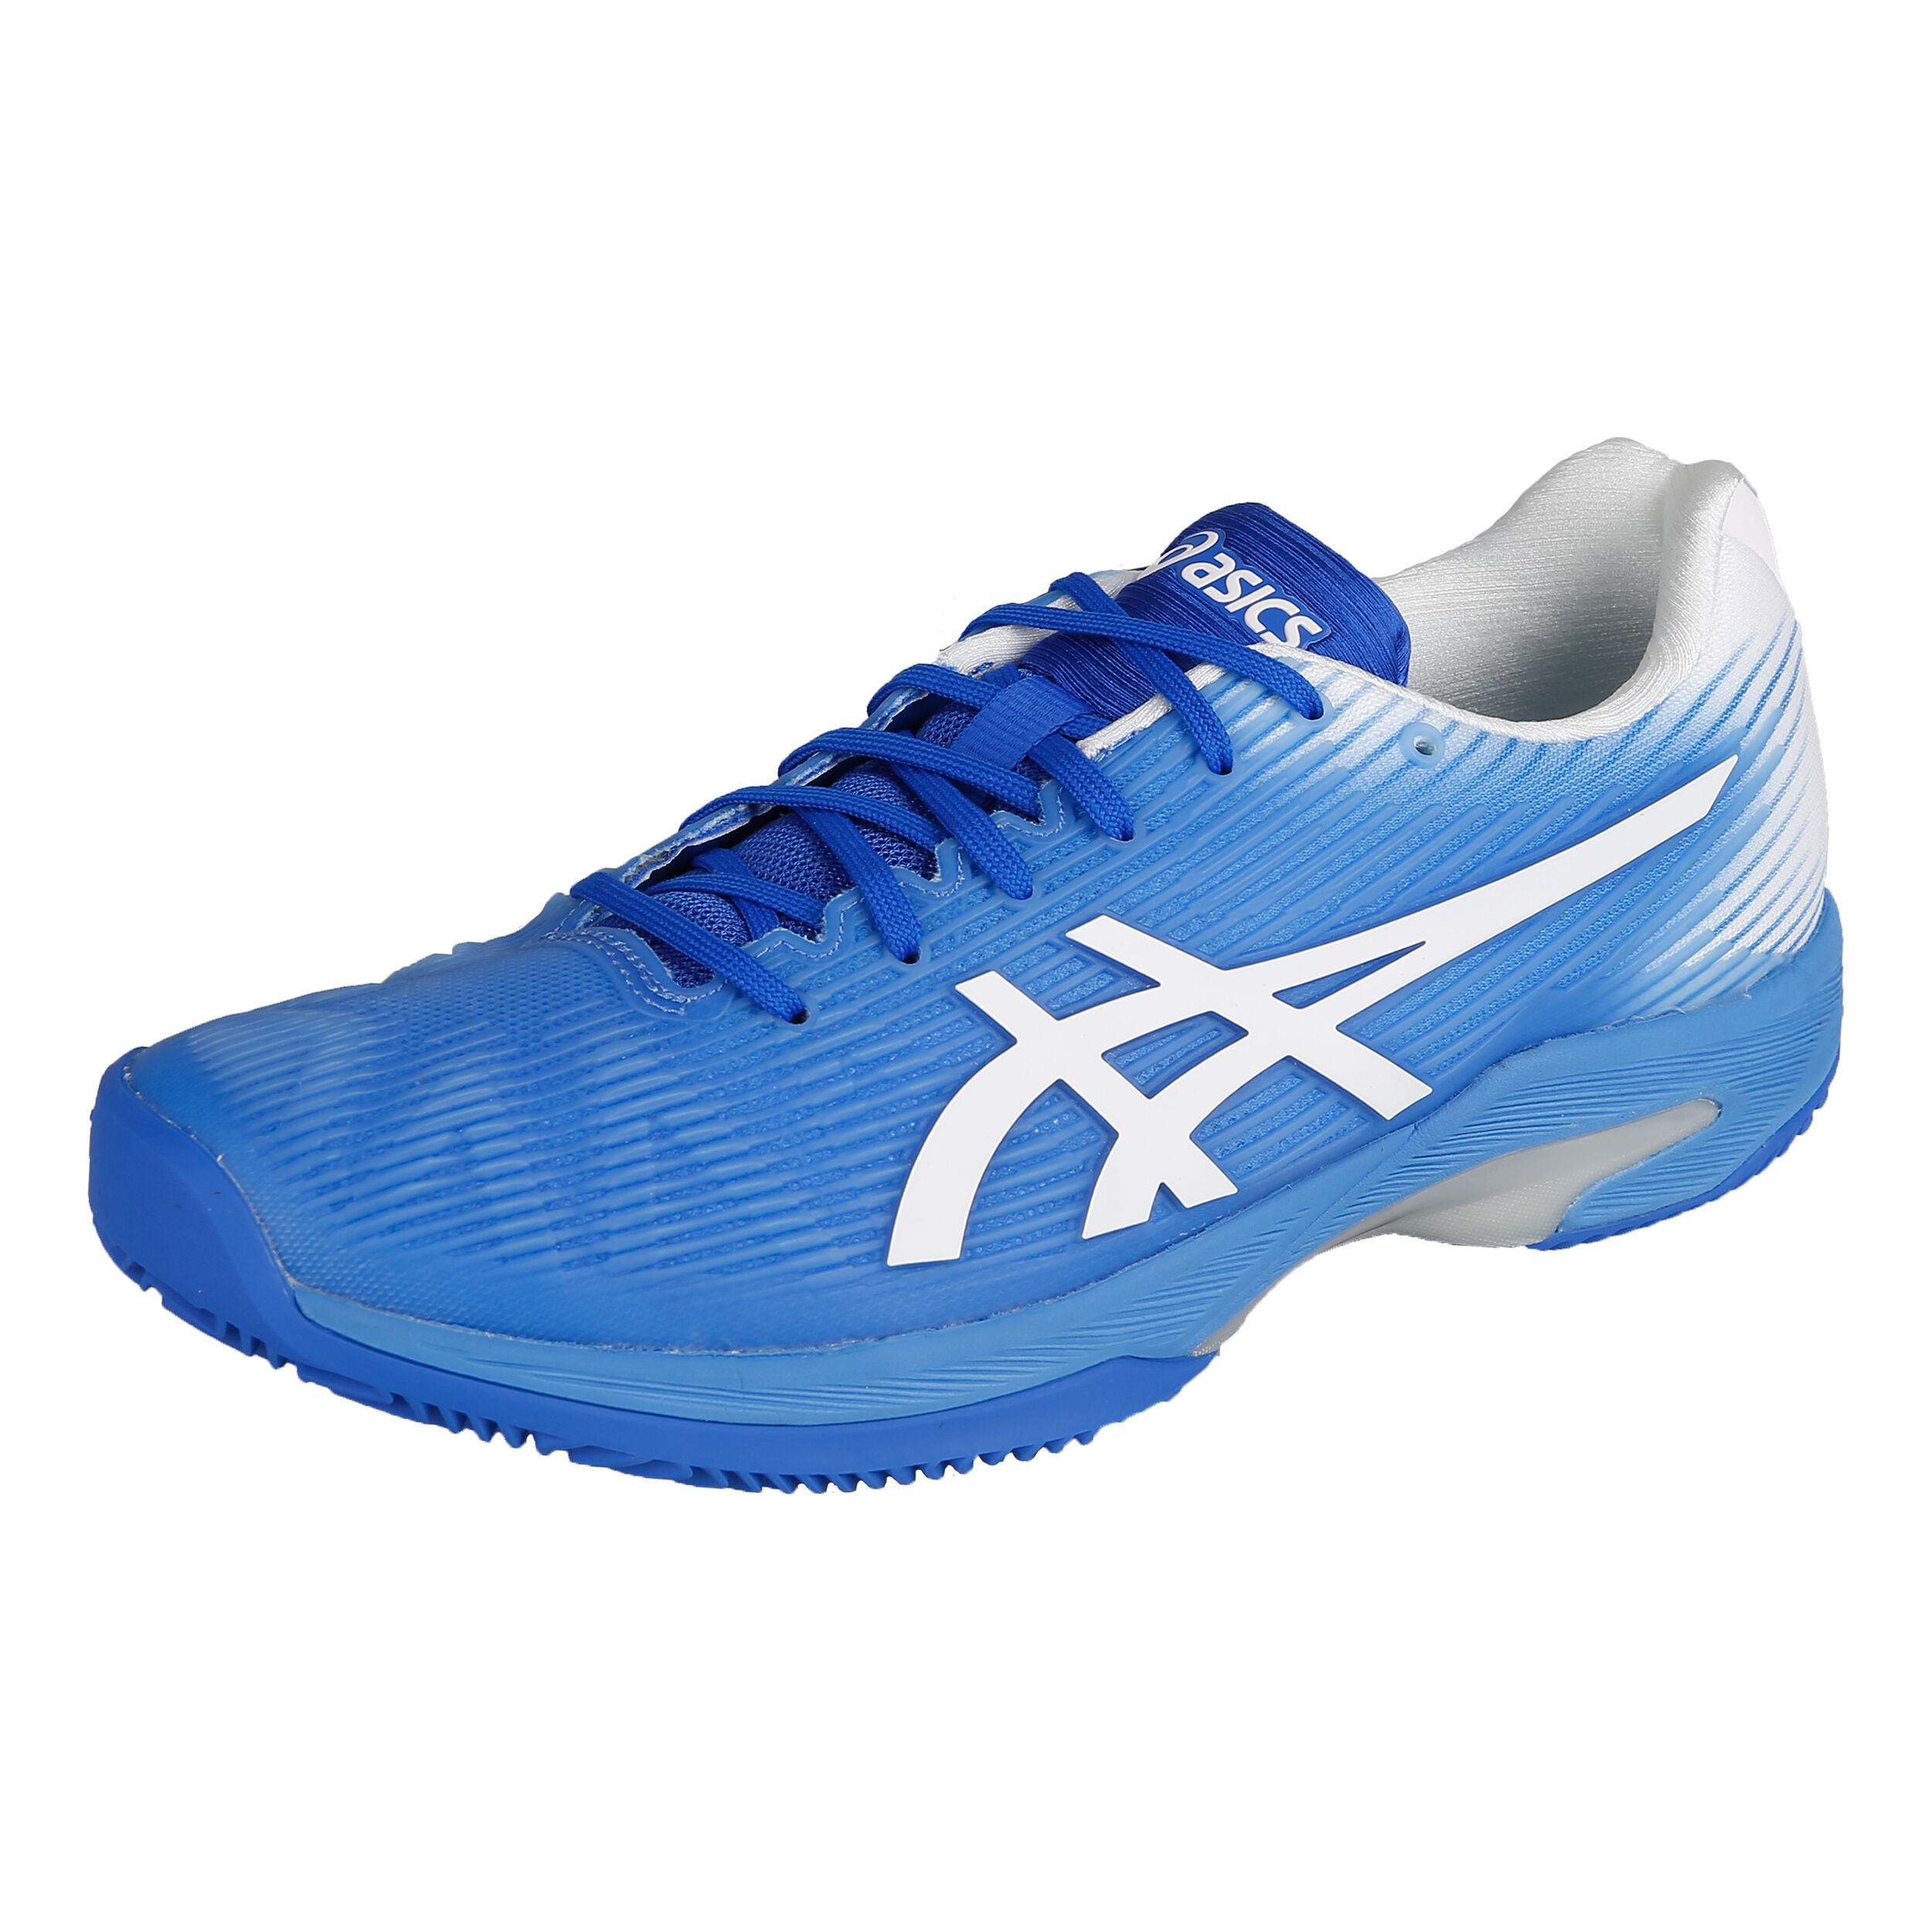 Asics Solution Speed FF Clay Sandplatzschuh Damen - Blau ...